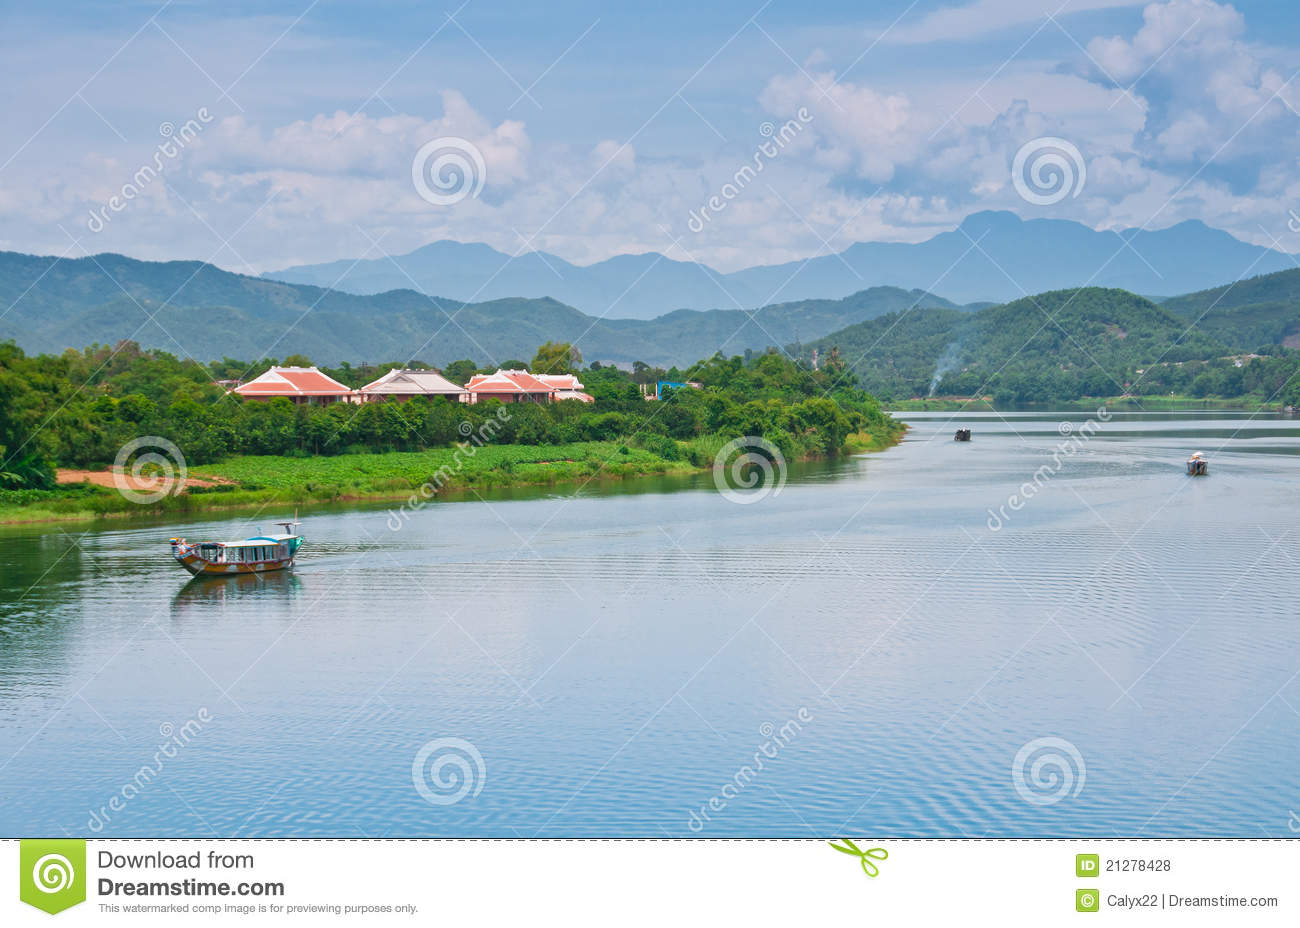 The Mekong River, Vietnam Royalty Free Stock Photos.